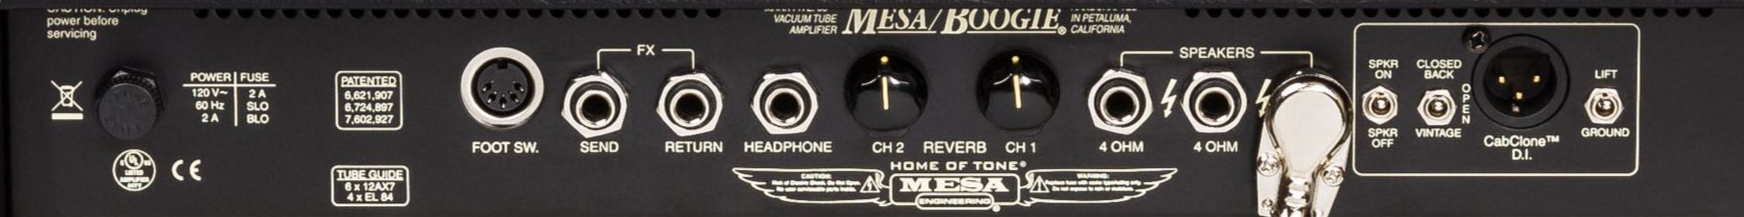 MESA BOOGIE Mark Five:35 Rear Panel